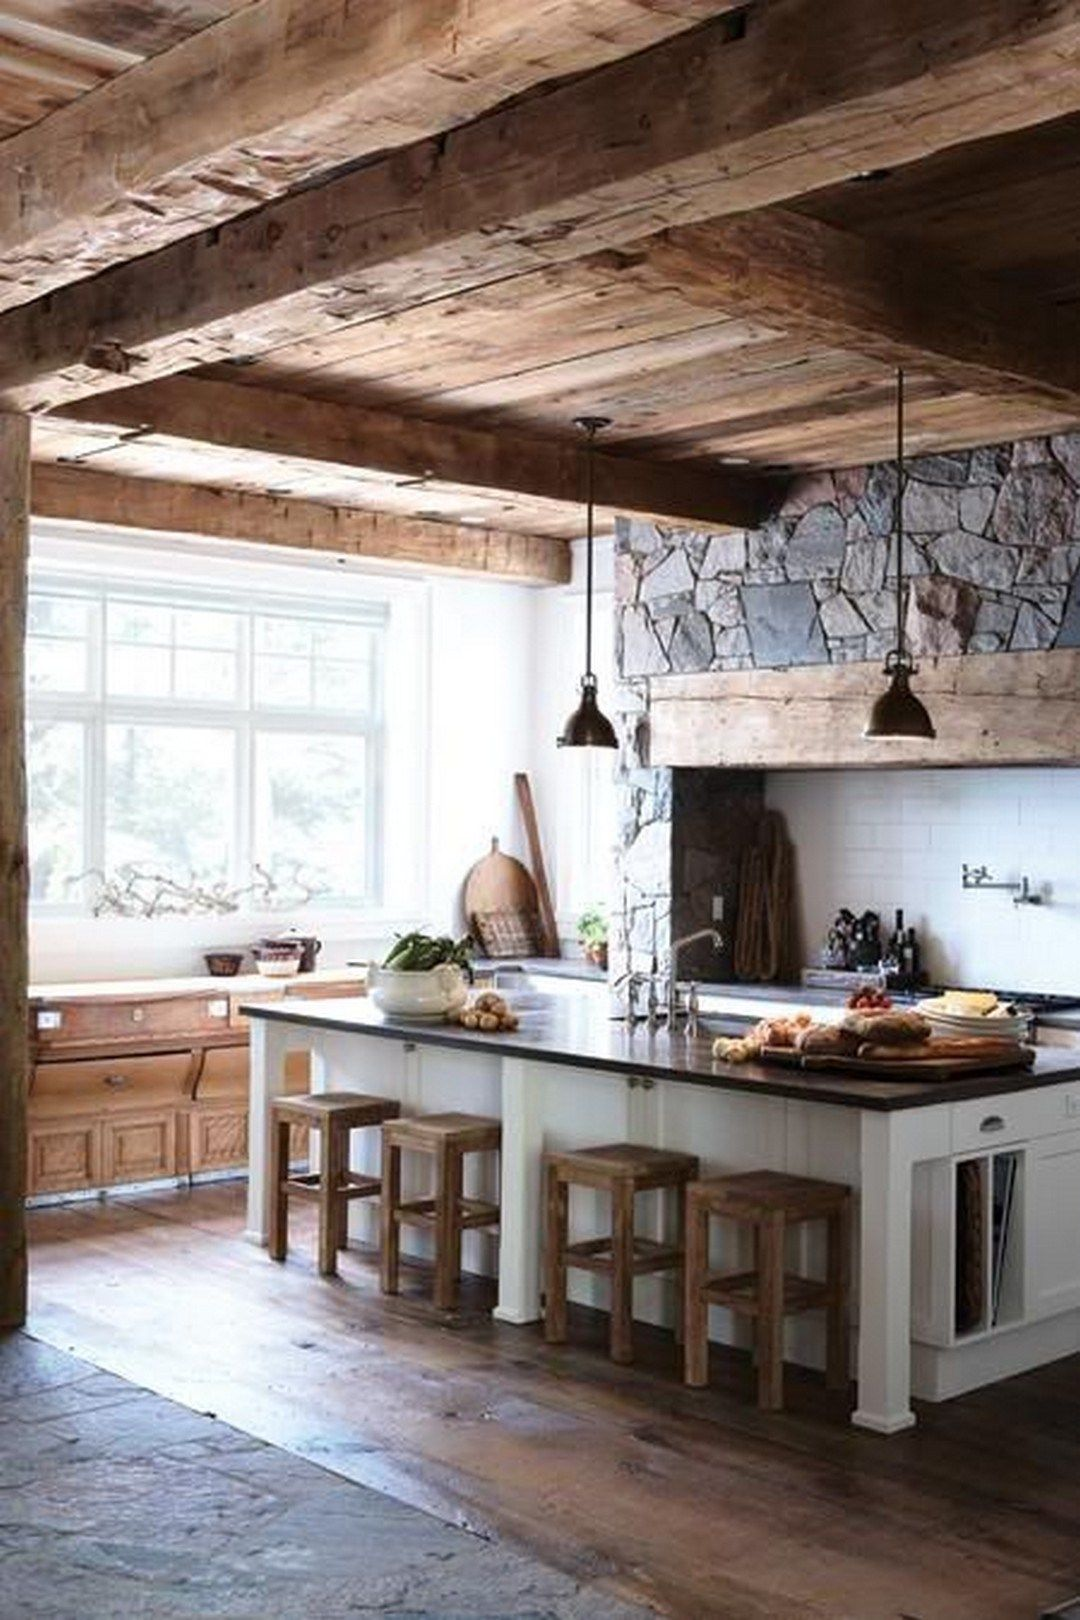 Modern Cozy Mountain Home Design Ideas 18: Rustic Kitchen, Timber Kitchen, Home Kitchens